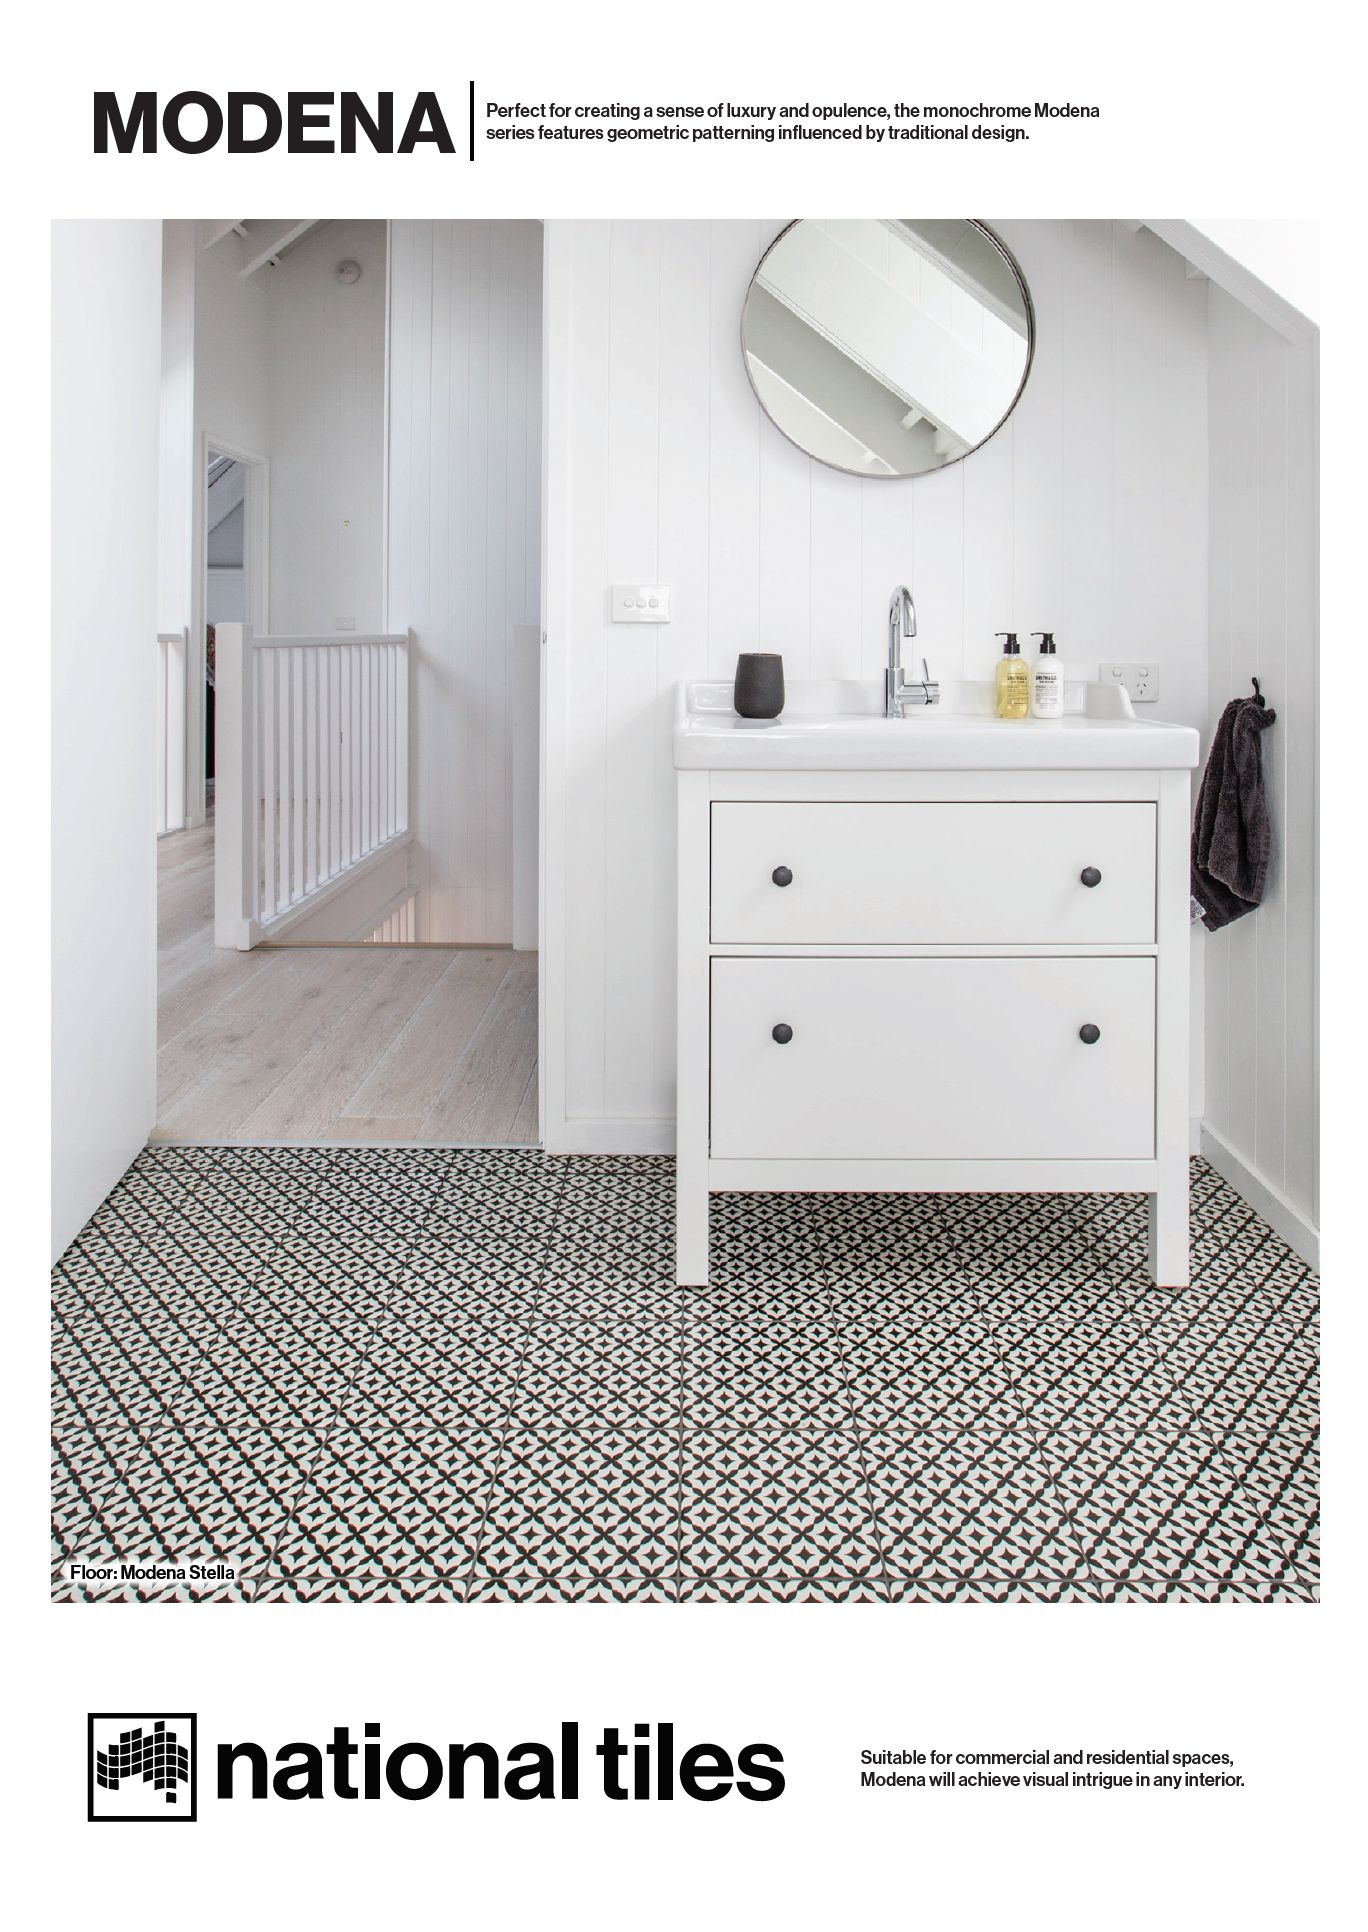 9x9 Room Design: Modena Stella Tiles 9x9 From Portland Direct Tile And